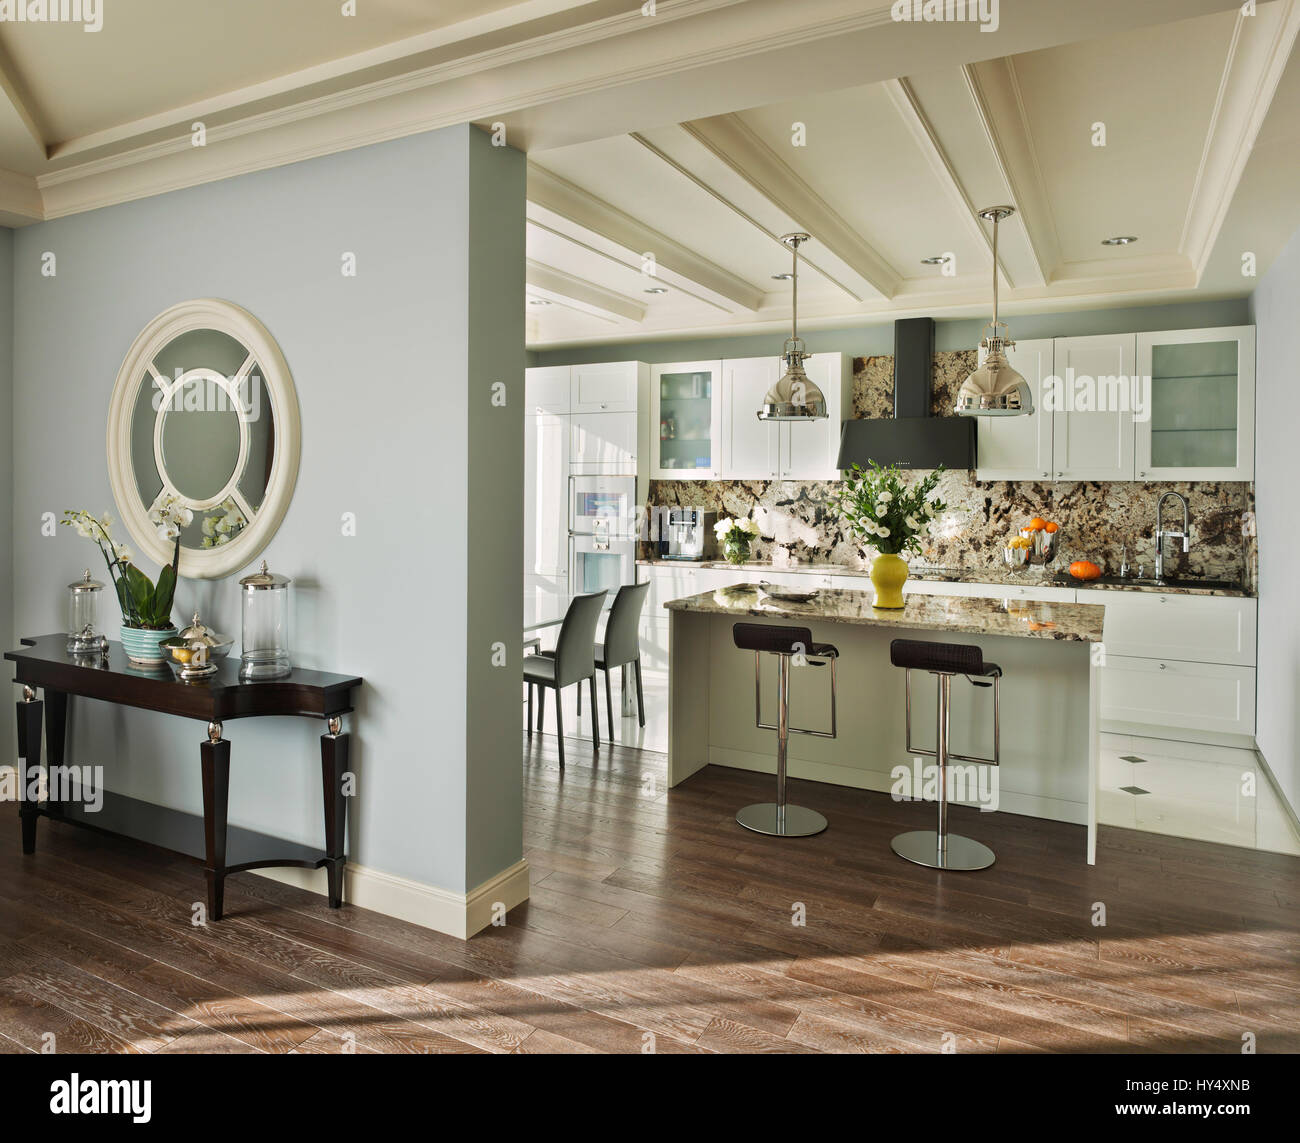 classic style interior design. Luxury Apartment In A Classic Style Moscow; Interior Design, Classic, Pastel, Living Room, Decor,design, Exclusive, Lifestyle, Rich,kitchen Design